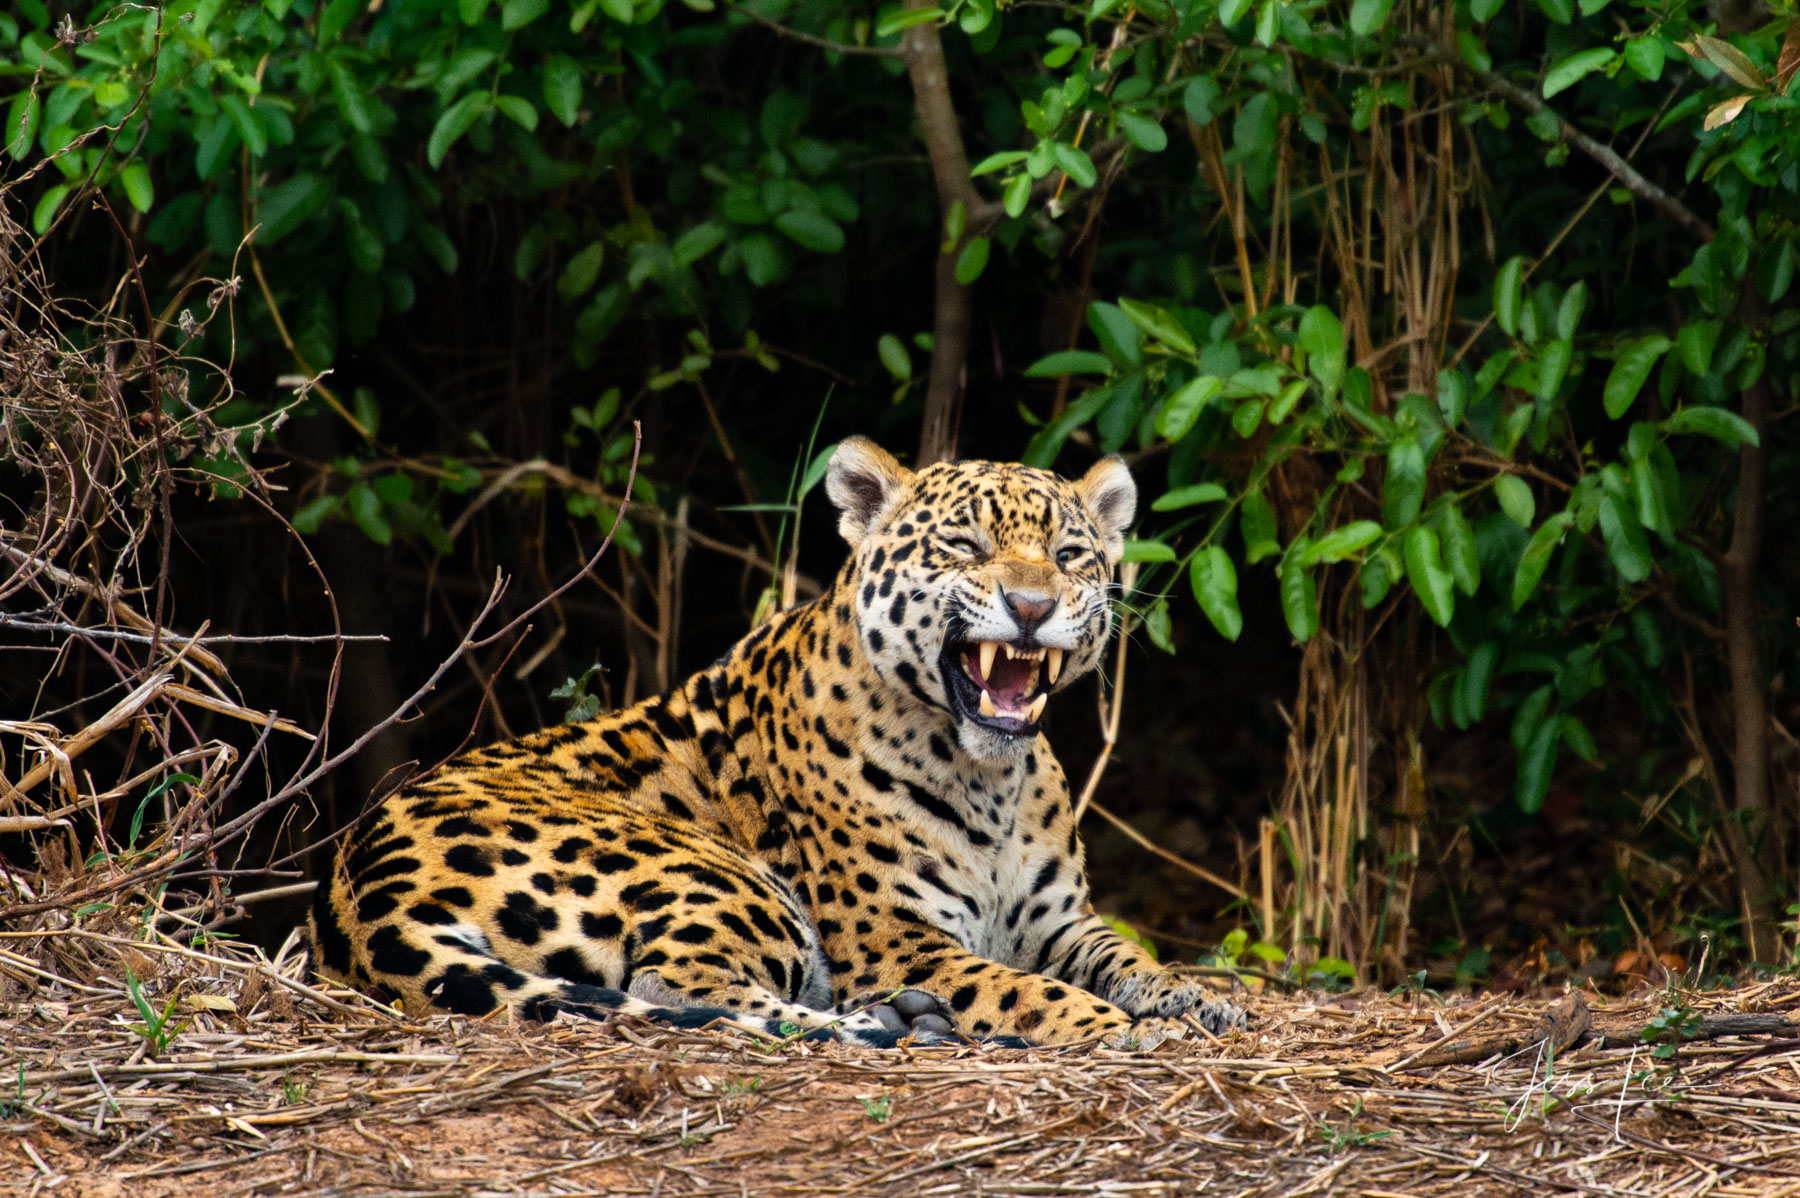 Fine art Jaguar with a big smile print limited edition of 300 luxury prints by Jess Lee. All photographs copyright © Jess Lee...